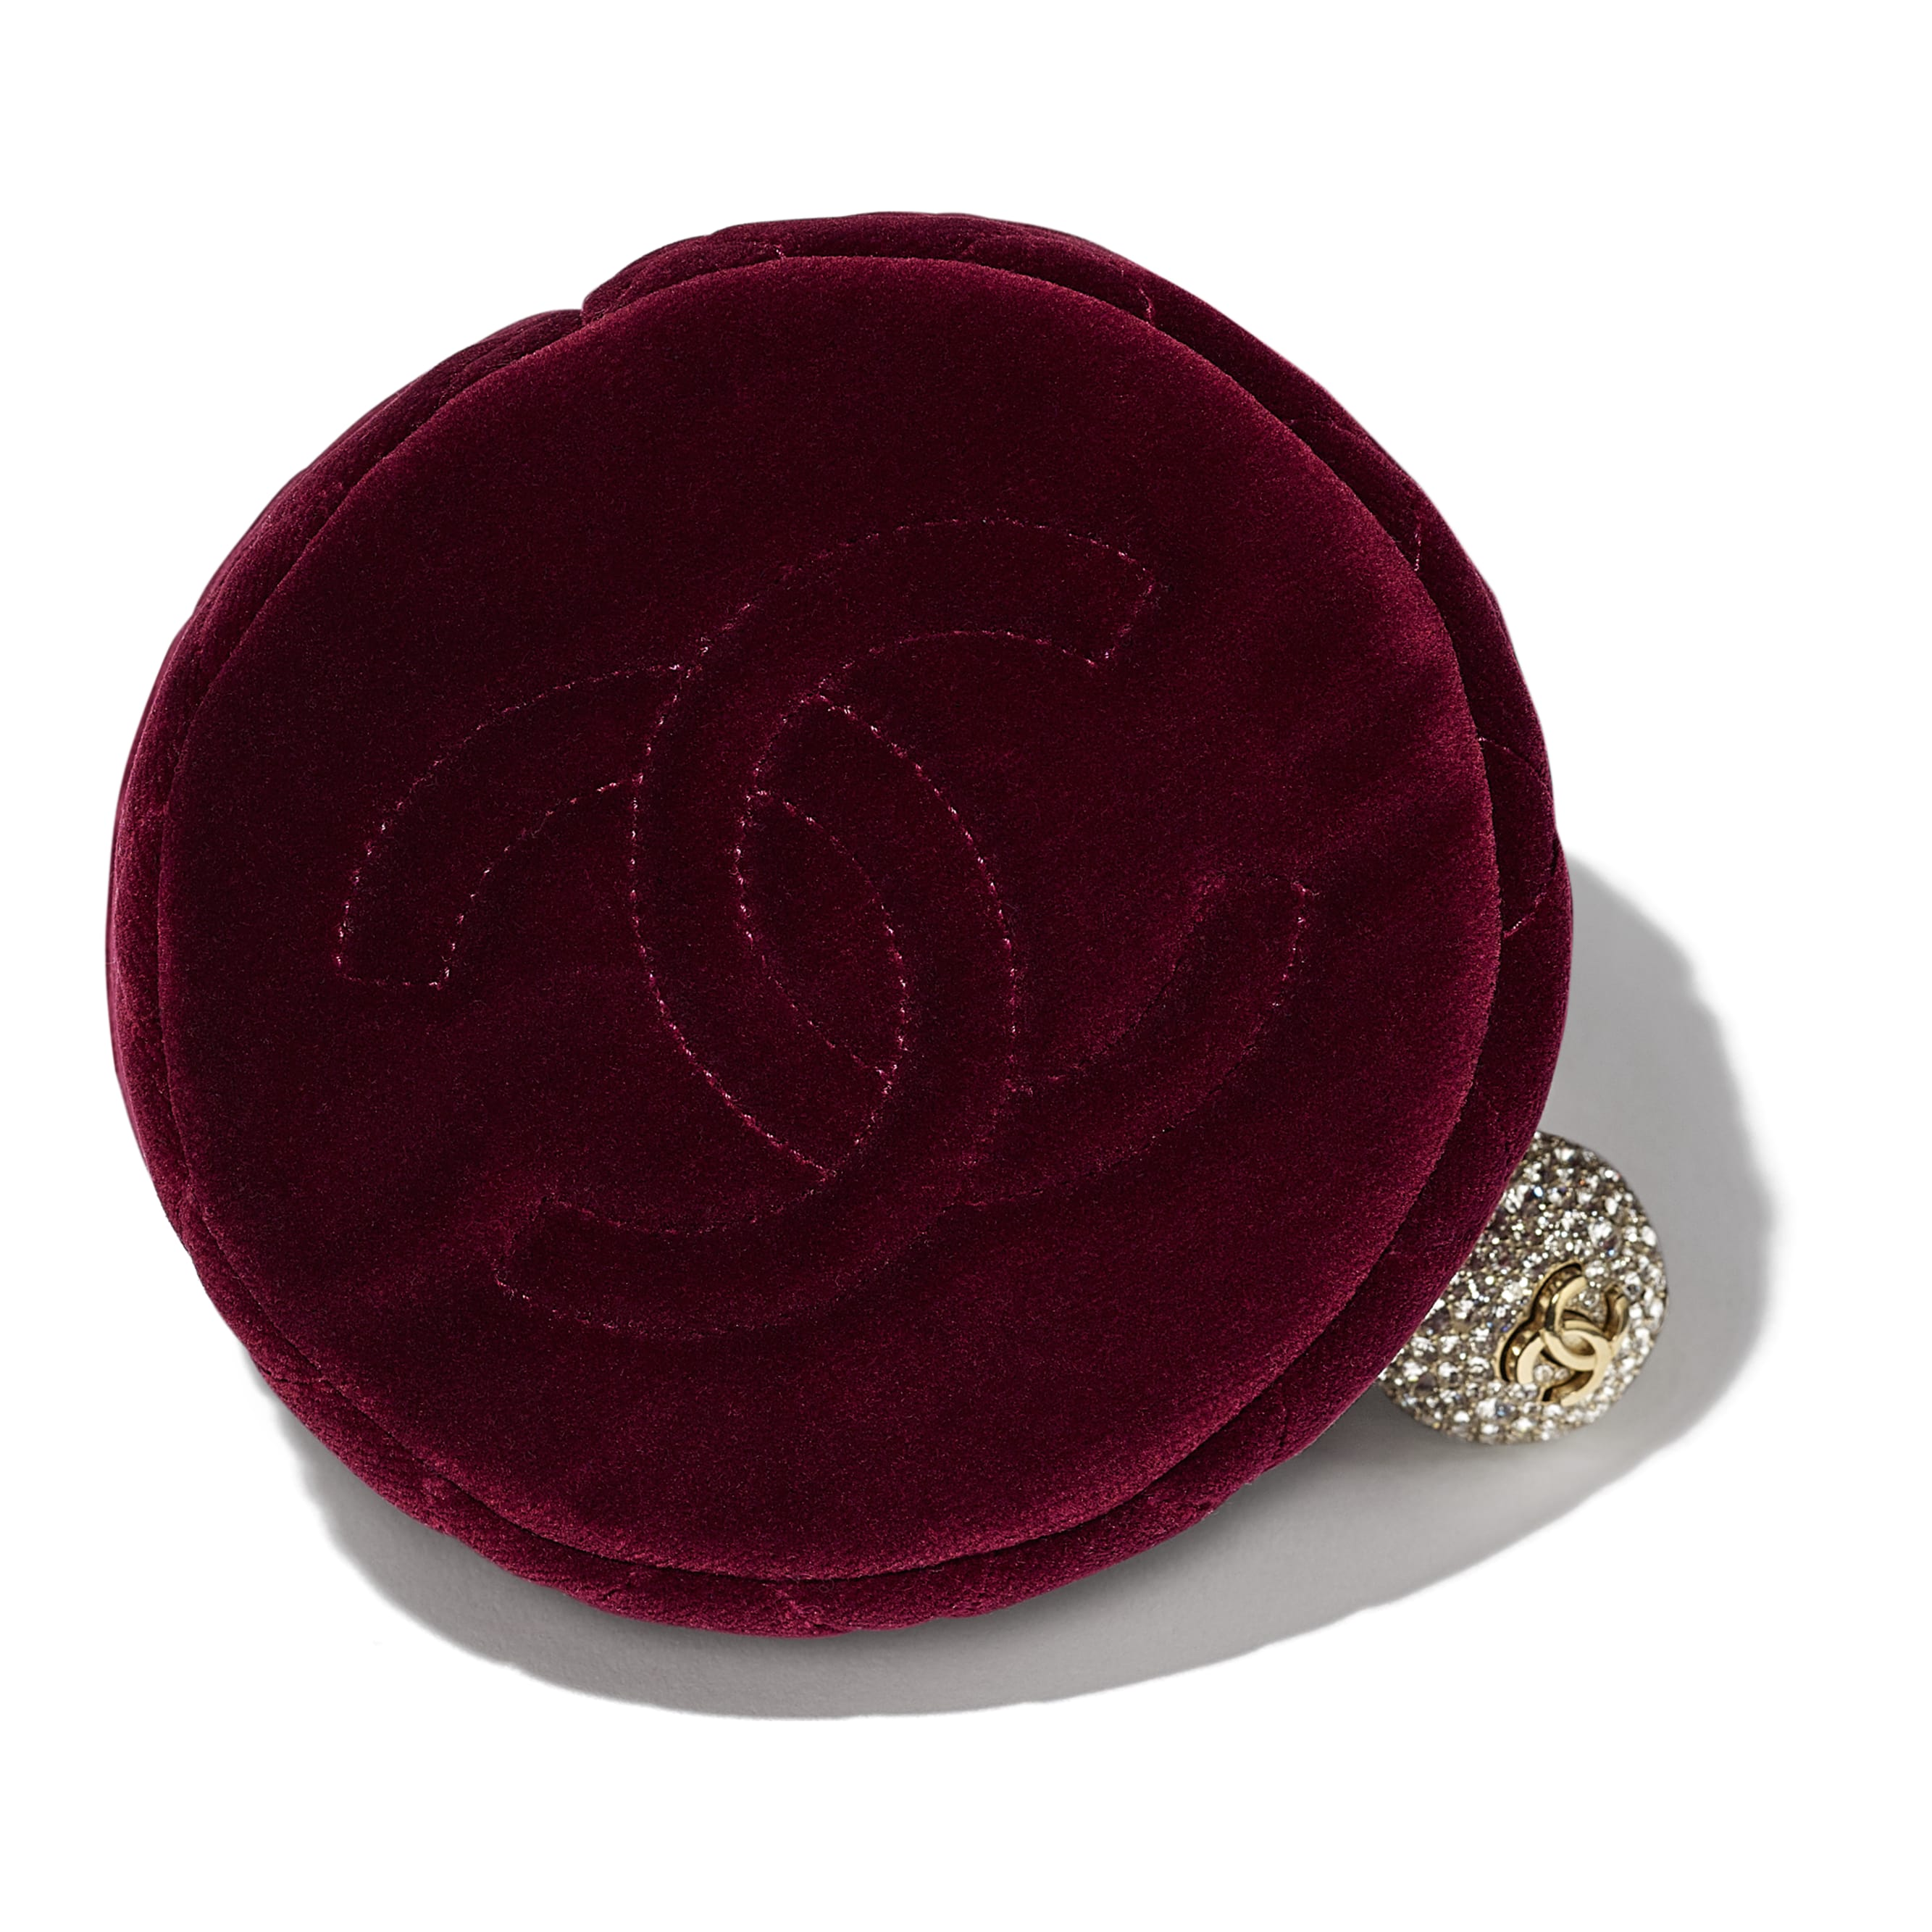 Drawstring Bag - Burgundy - Velvet, Diamanté & Gold-Tone Metal - CHANEL - Extra view - see standard sized version